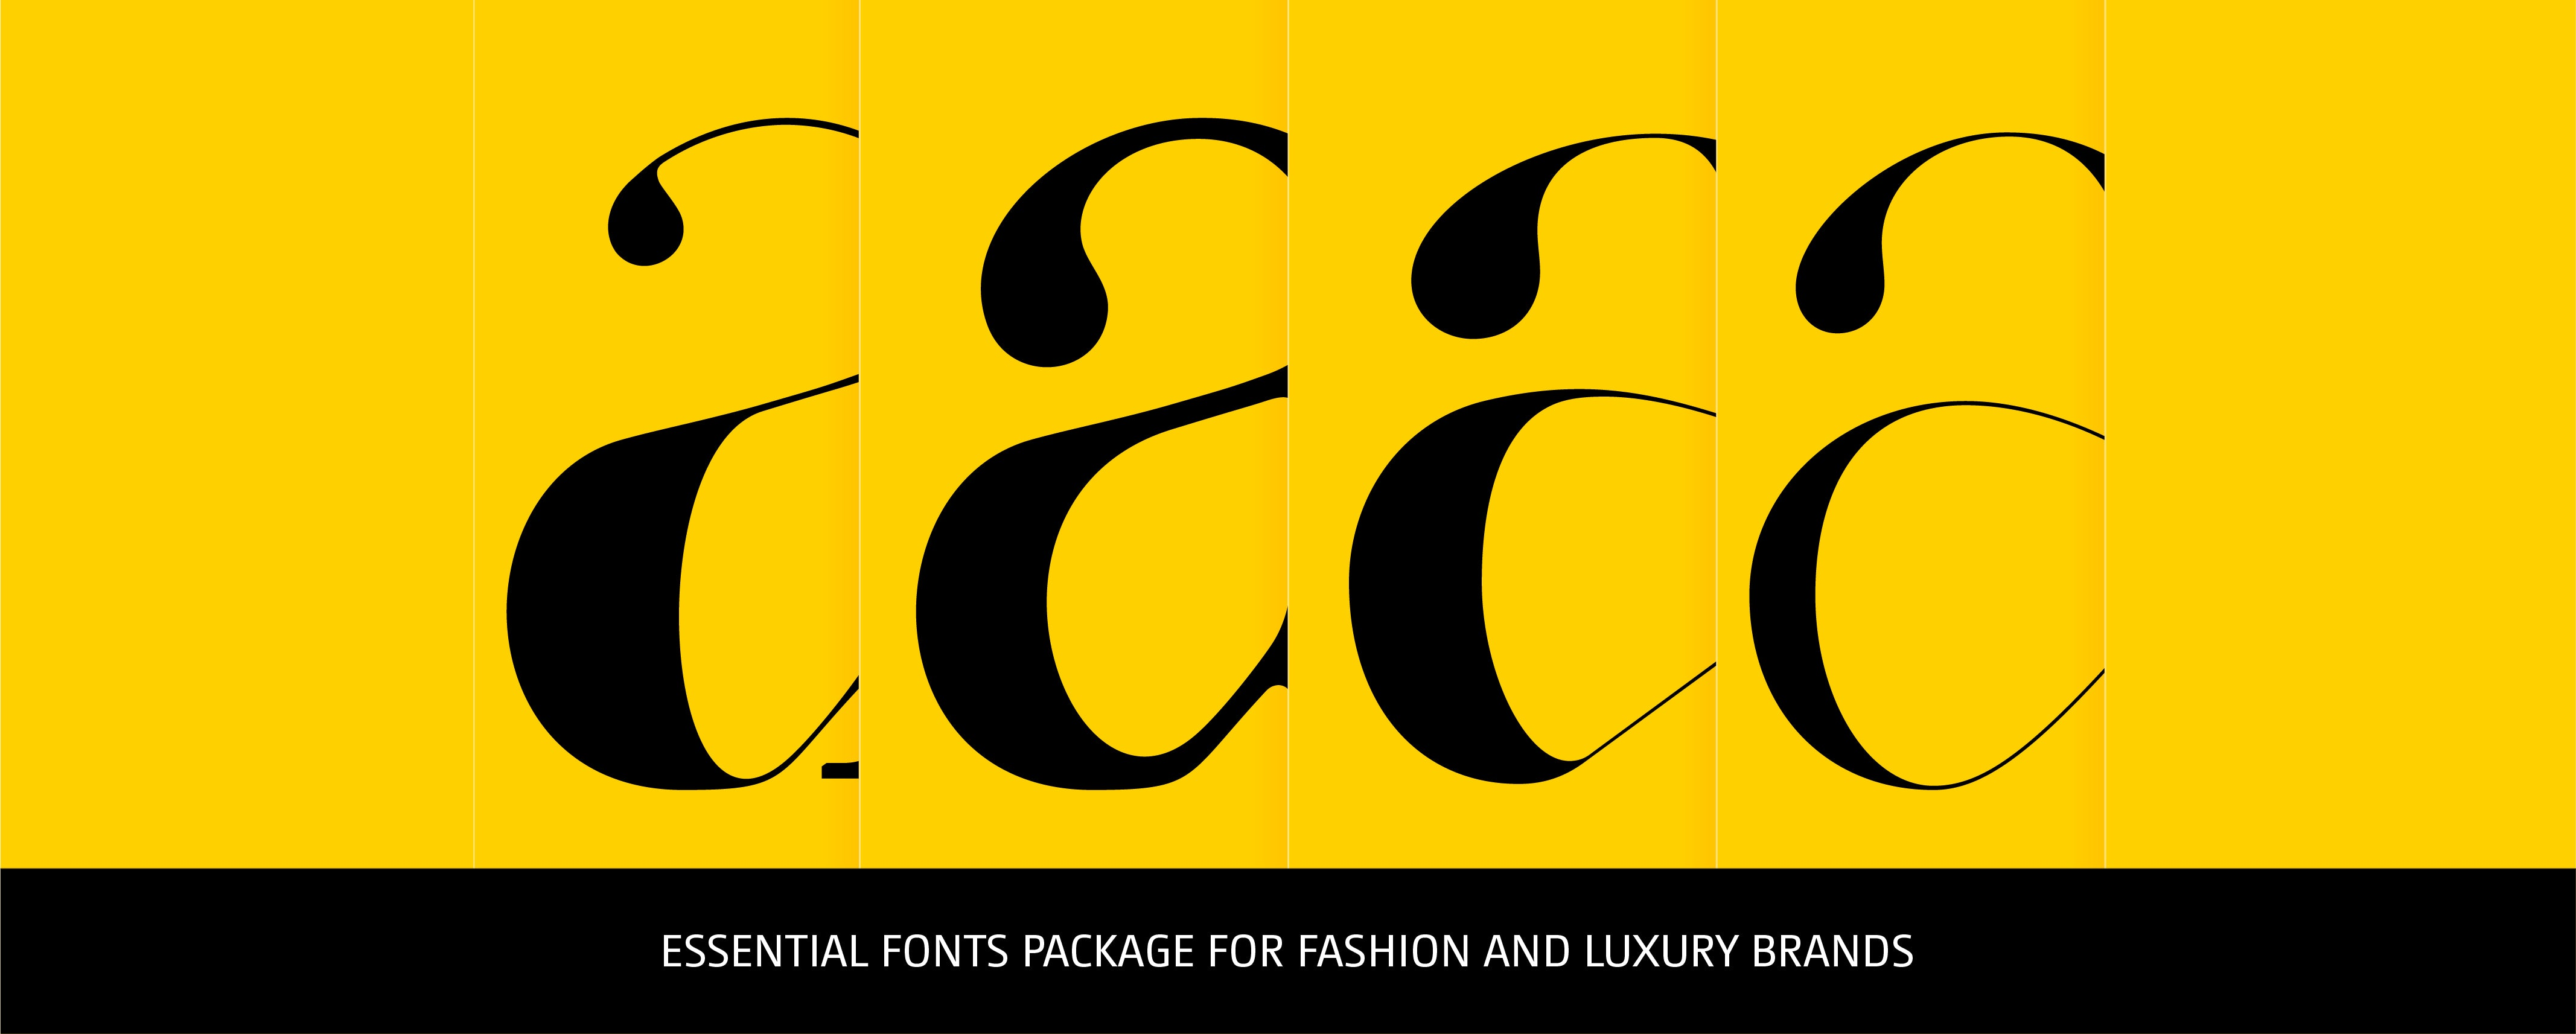 The Essential Fonts Package - Moshik Nadav Fashion Typography